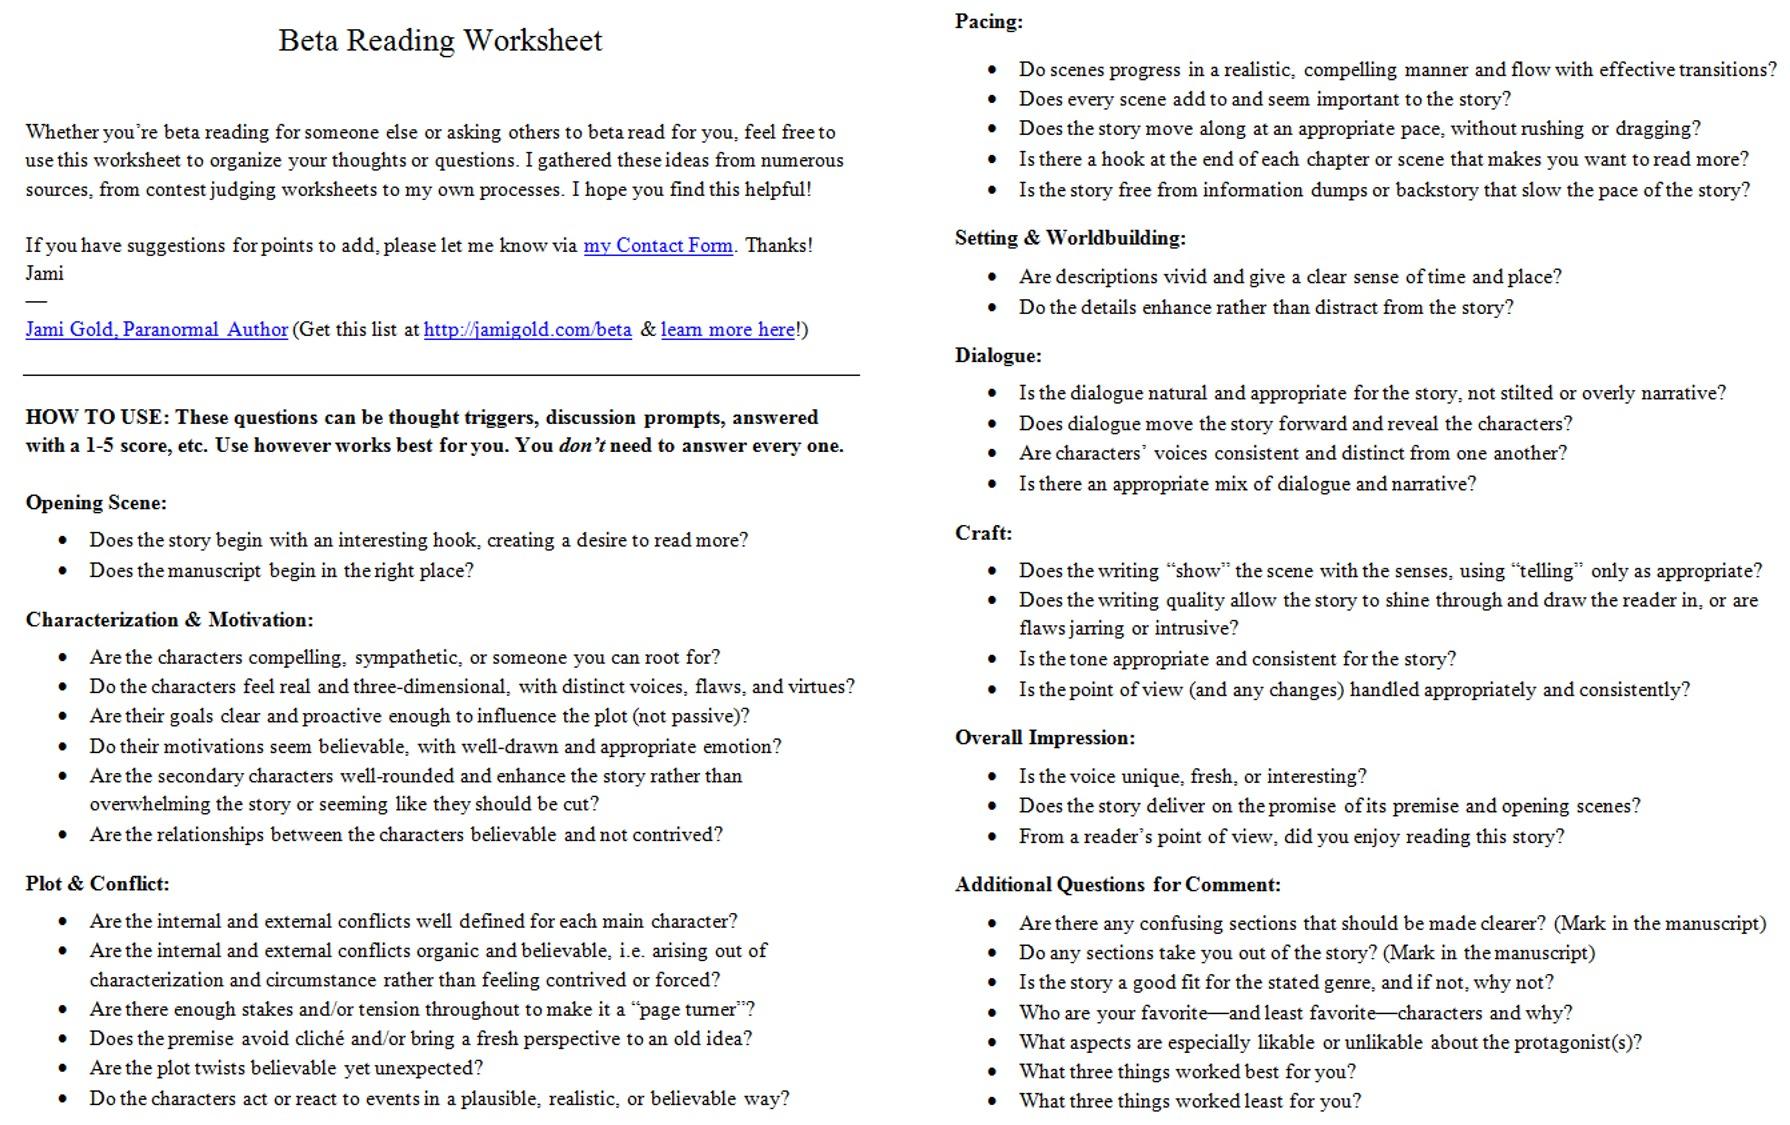 Weirdmailus  Terrific Worksheets For Writers  Jami Gold Paranormal Author With Magnificent Screen Shot Of The Twopage Beta Reading Worksheet With Appealing Multiplying Polynomials Worksheet Answer Key Also Integer Word Problems Worksheets In Addition Common Core Grade  Math Worksheets And Letter B Worksheets Kindergarten As Well As Math Coloring Worksheets Free Additionally  Times Tables Worksheets From Jamigoldcom With Weirdmailus  Magnificent Worksheets For Writers  Jami Gold Paranormal Author With Appealing Screen Shot Of The Twopage Beta Reading Worksheet And Terrific Multiplying Polynomials Worksheet Answer Key Also Integer Word Problems Worksheets In Addition Common Core Grade  Math Worksheets From Jamigoldcom